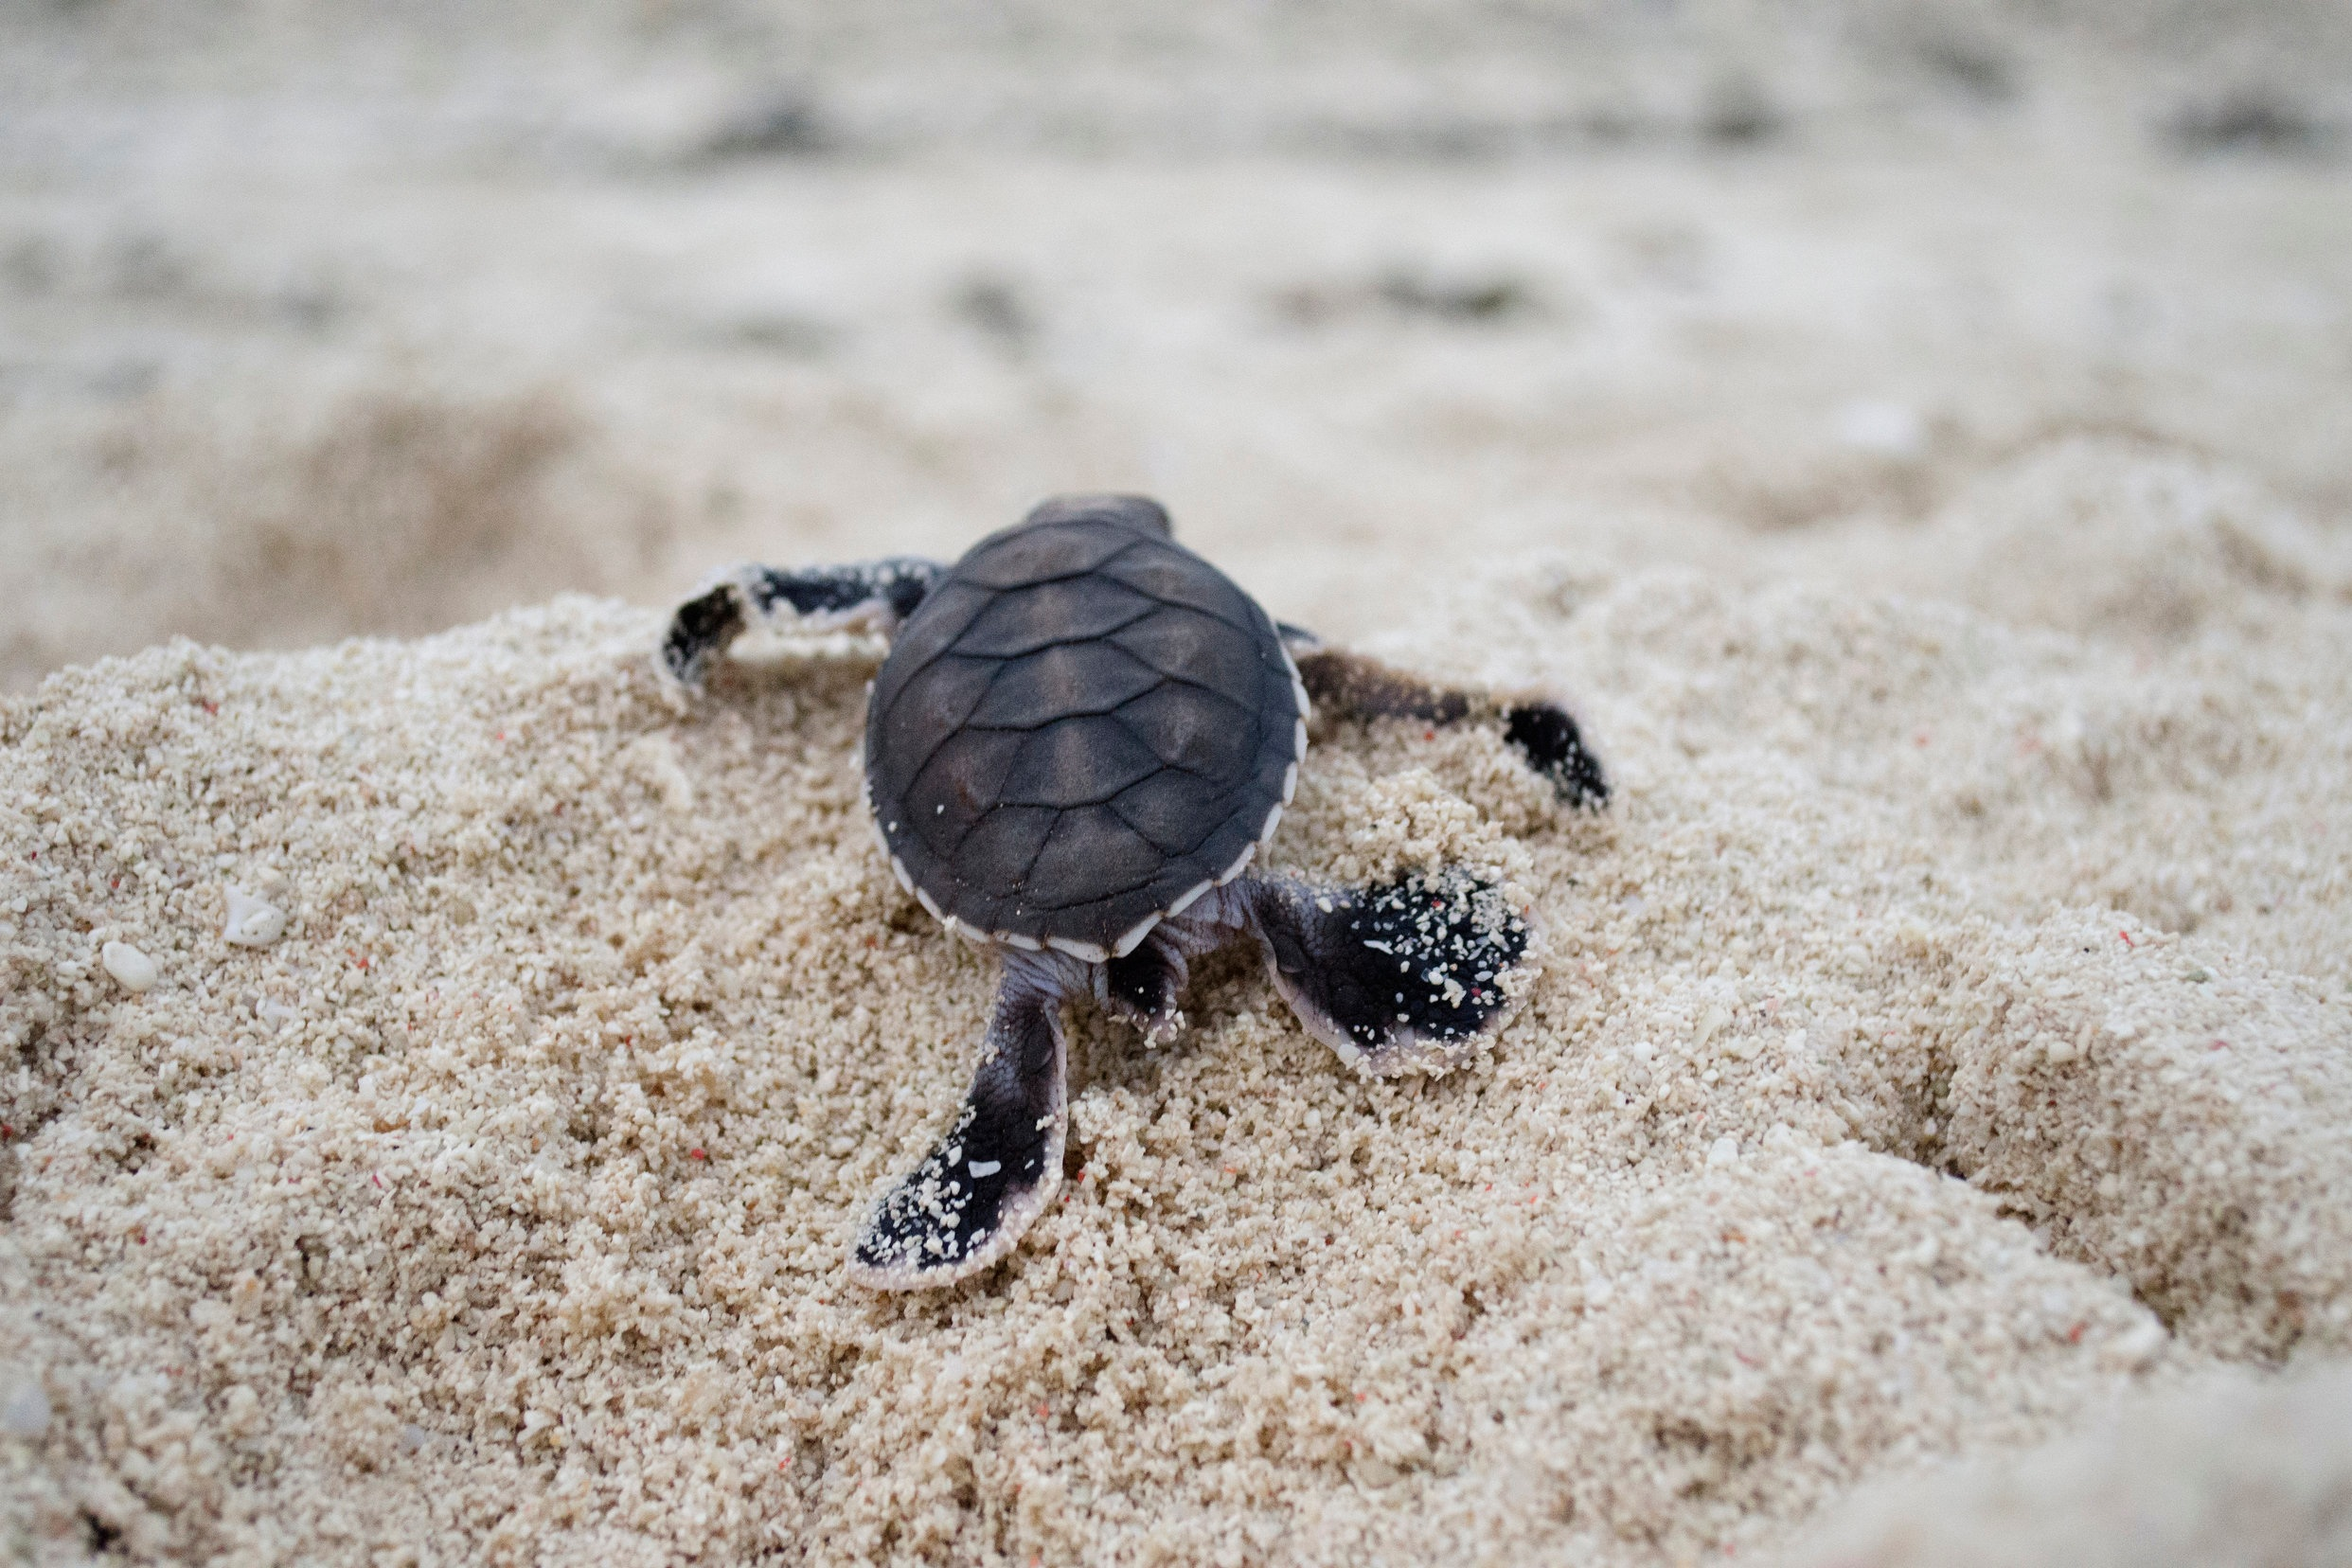 TURTLE HATCHLING, NEW CALEDONIA CREDIT: THE OCEAN AGENCY / coral reef image bank